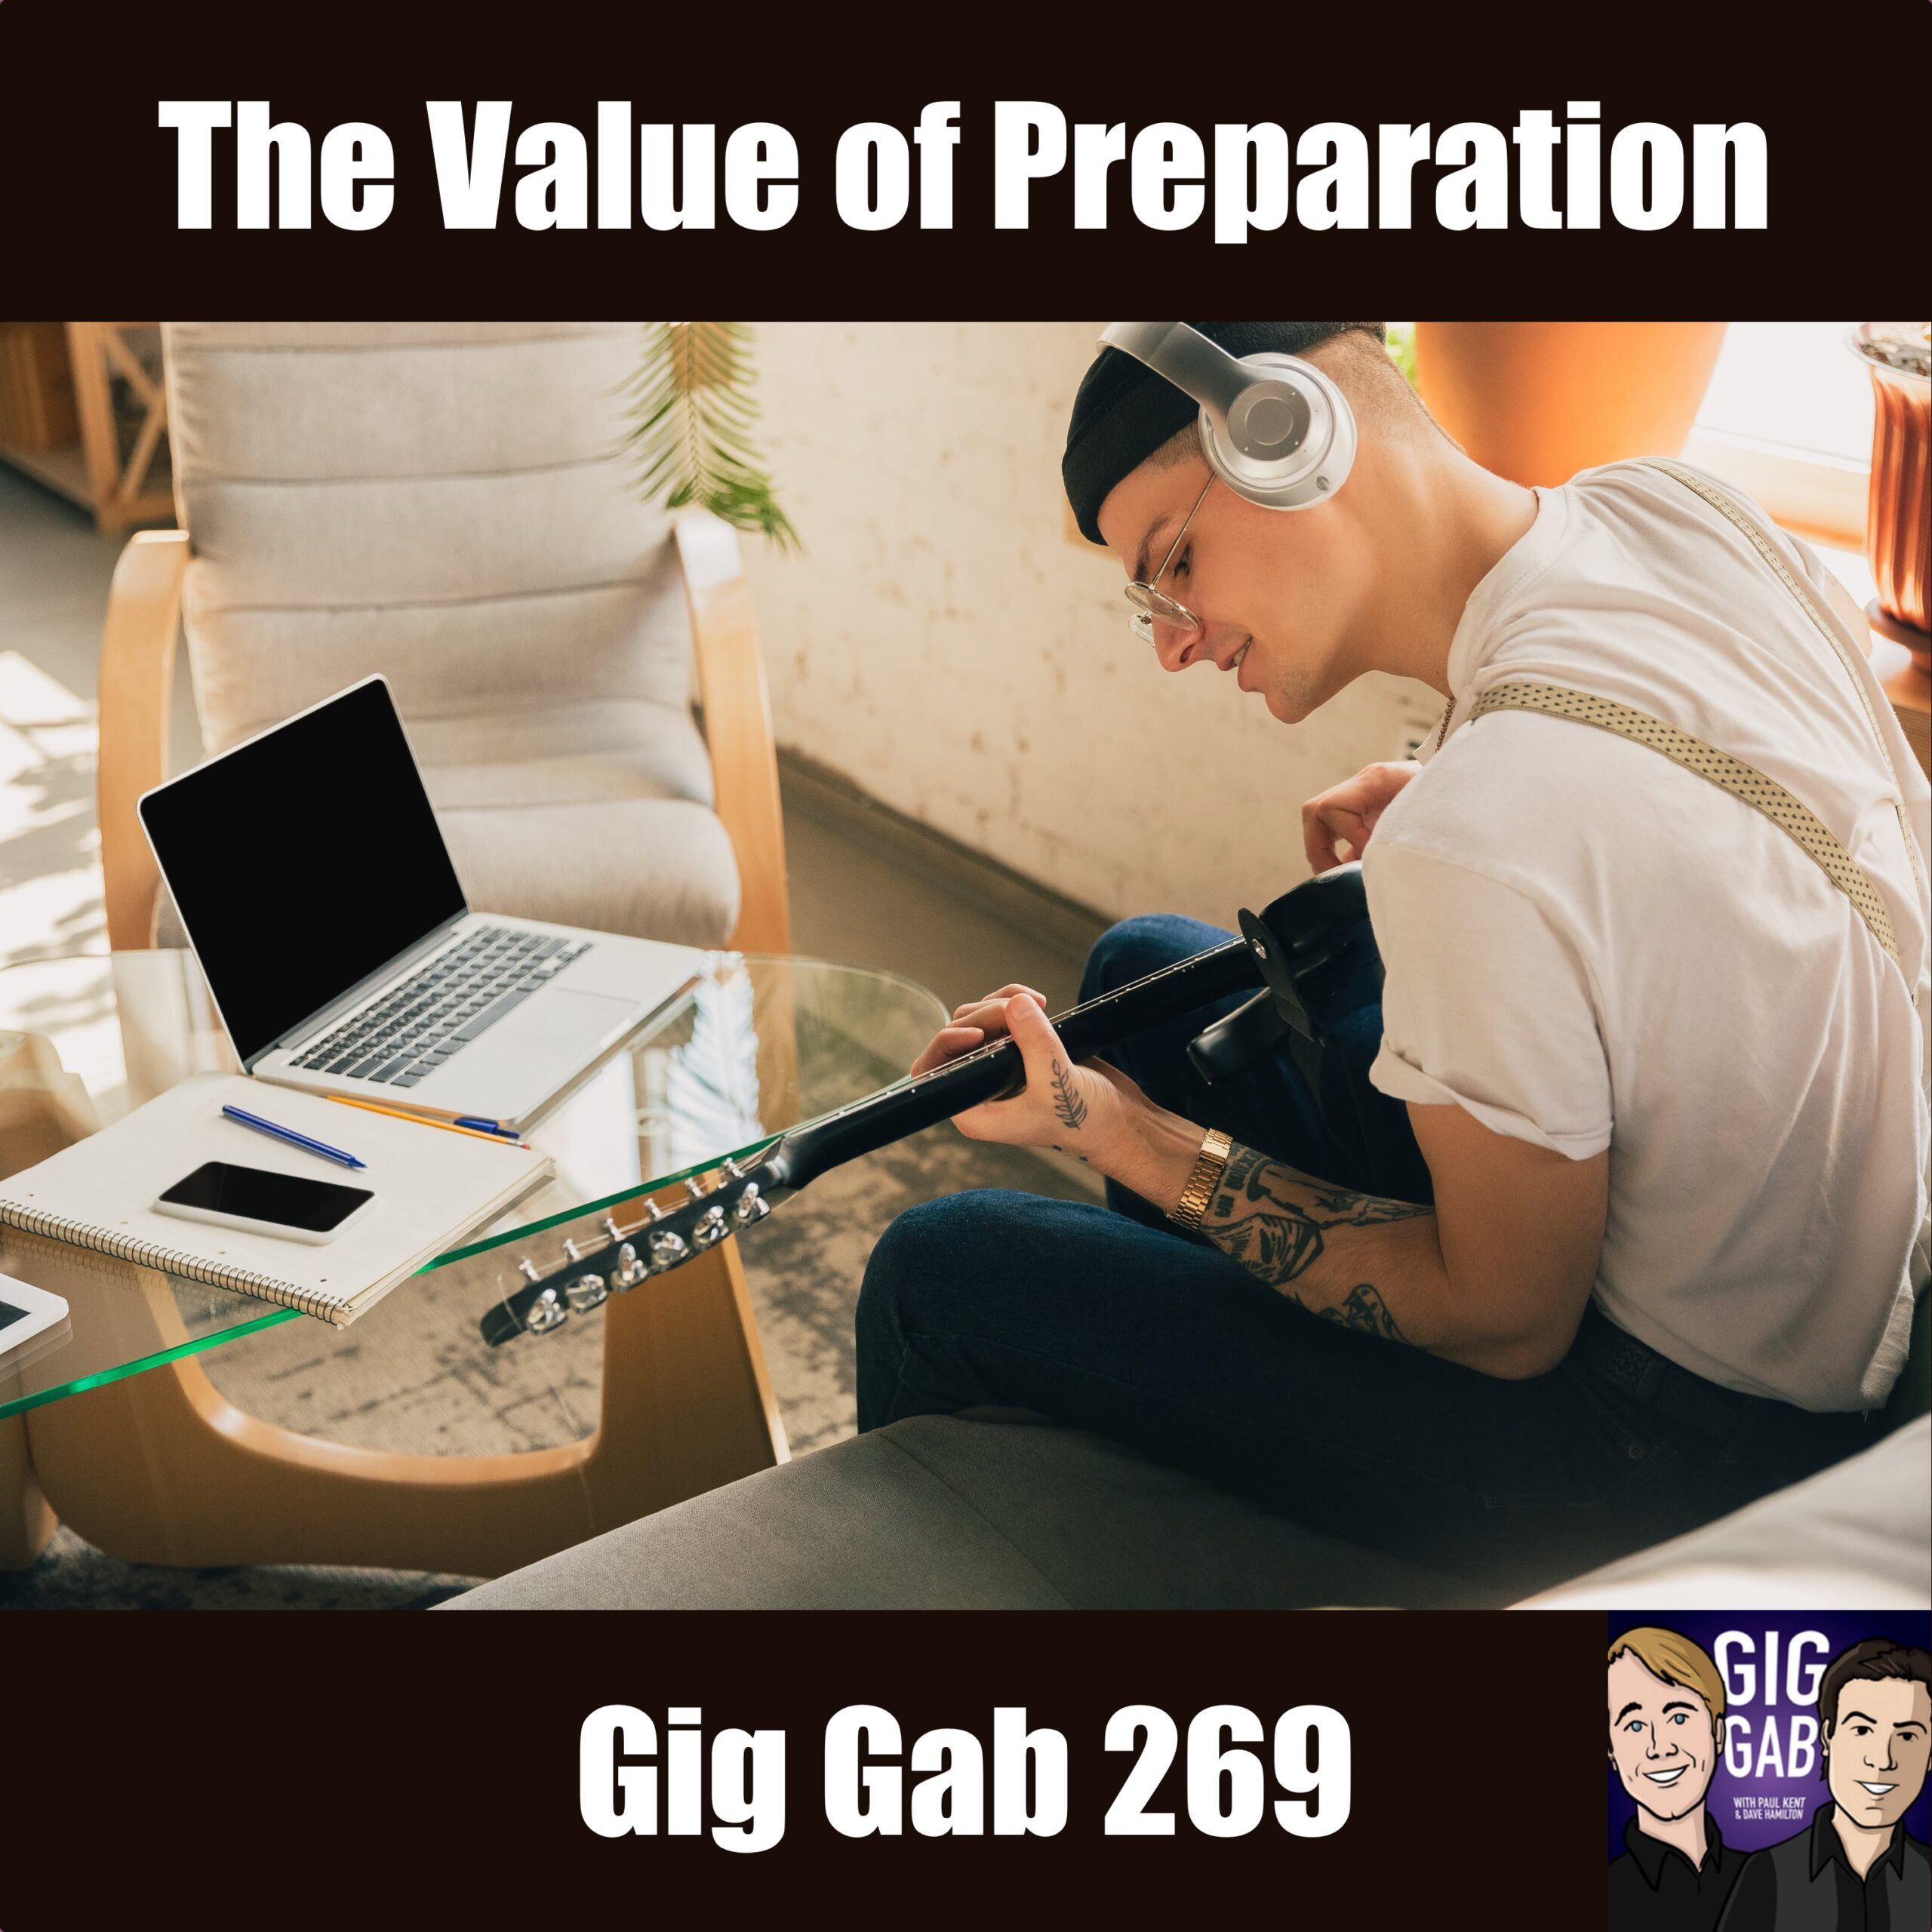 Gig Gab 269 Episode Image with guitarist working and rehearsing.